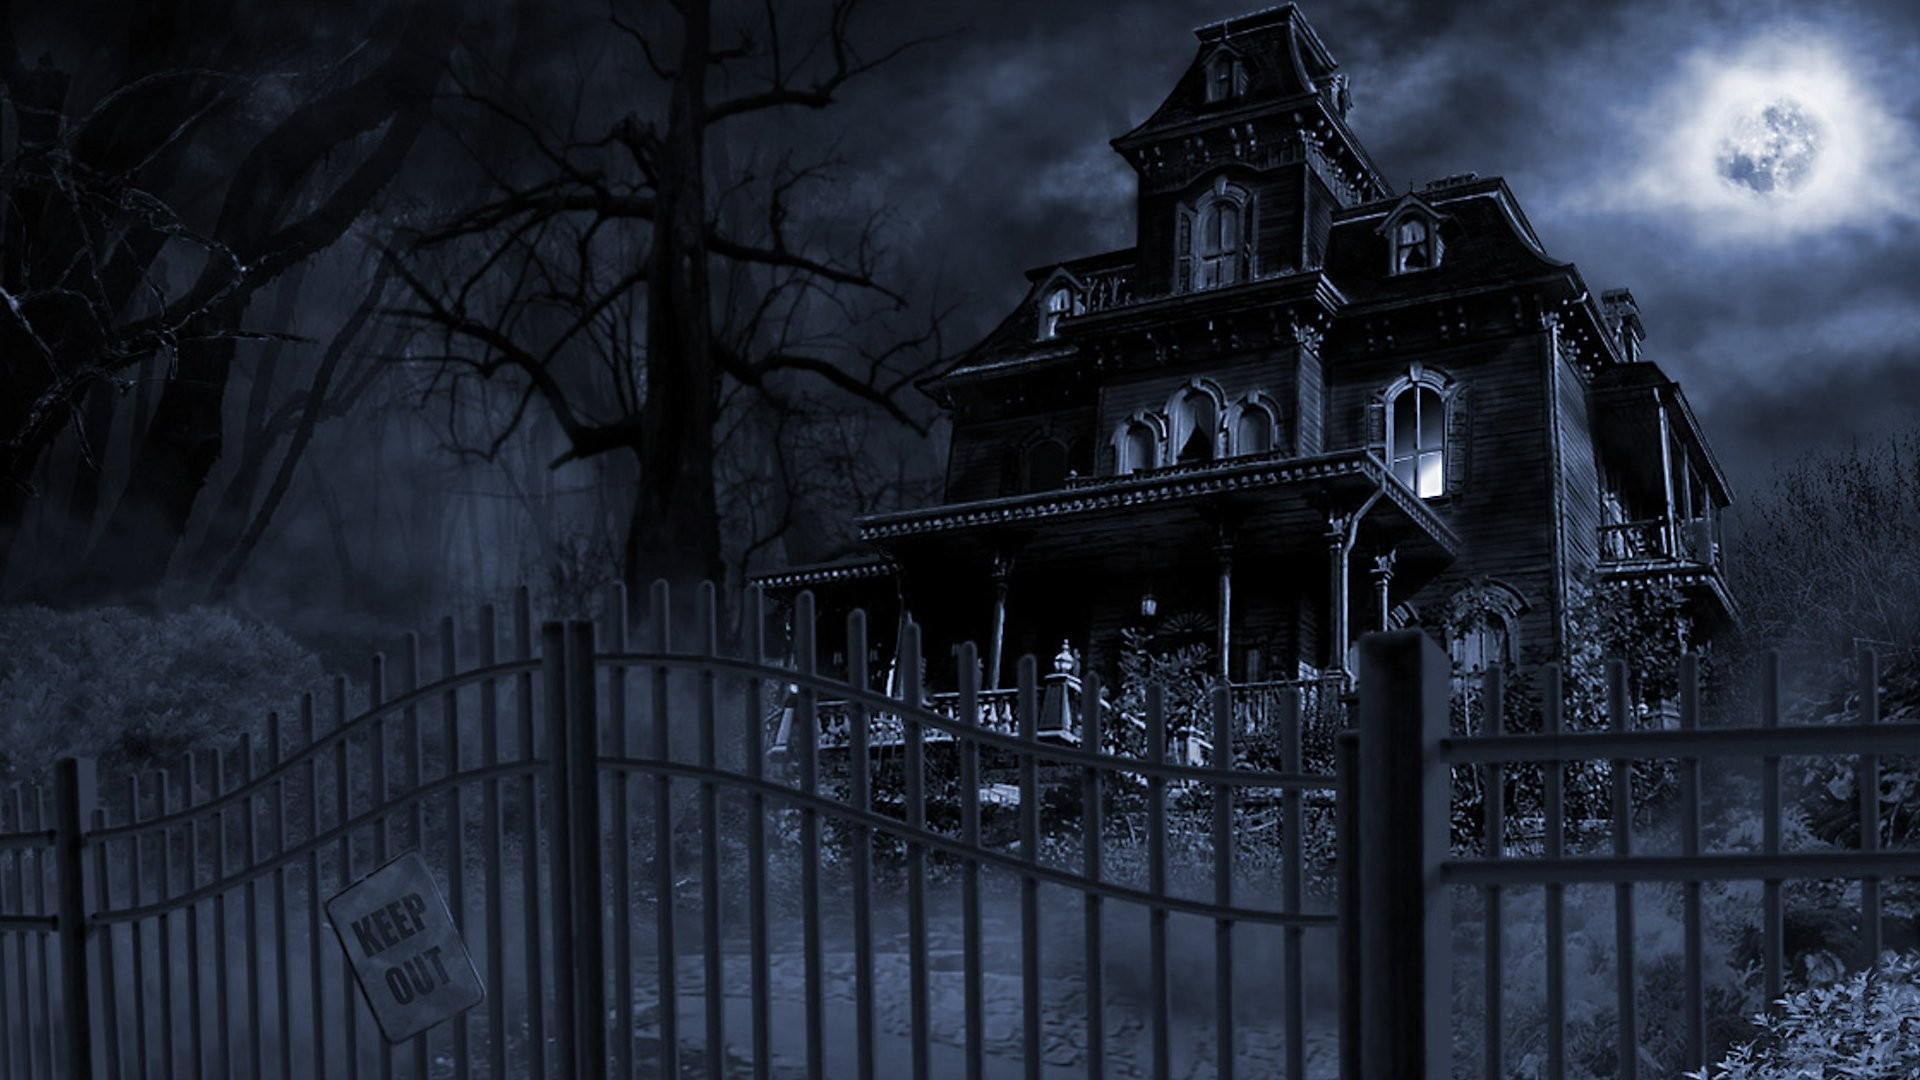 haunted house wallpaper for computer (48+ images)